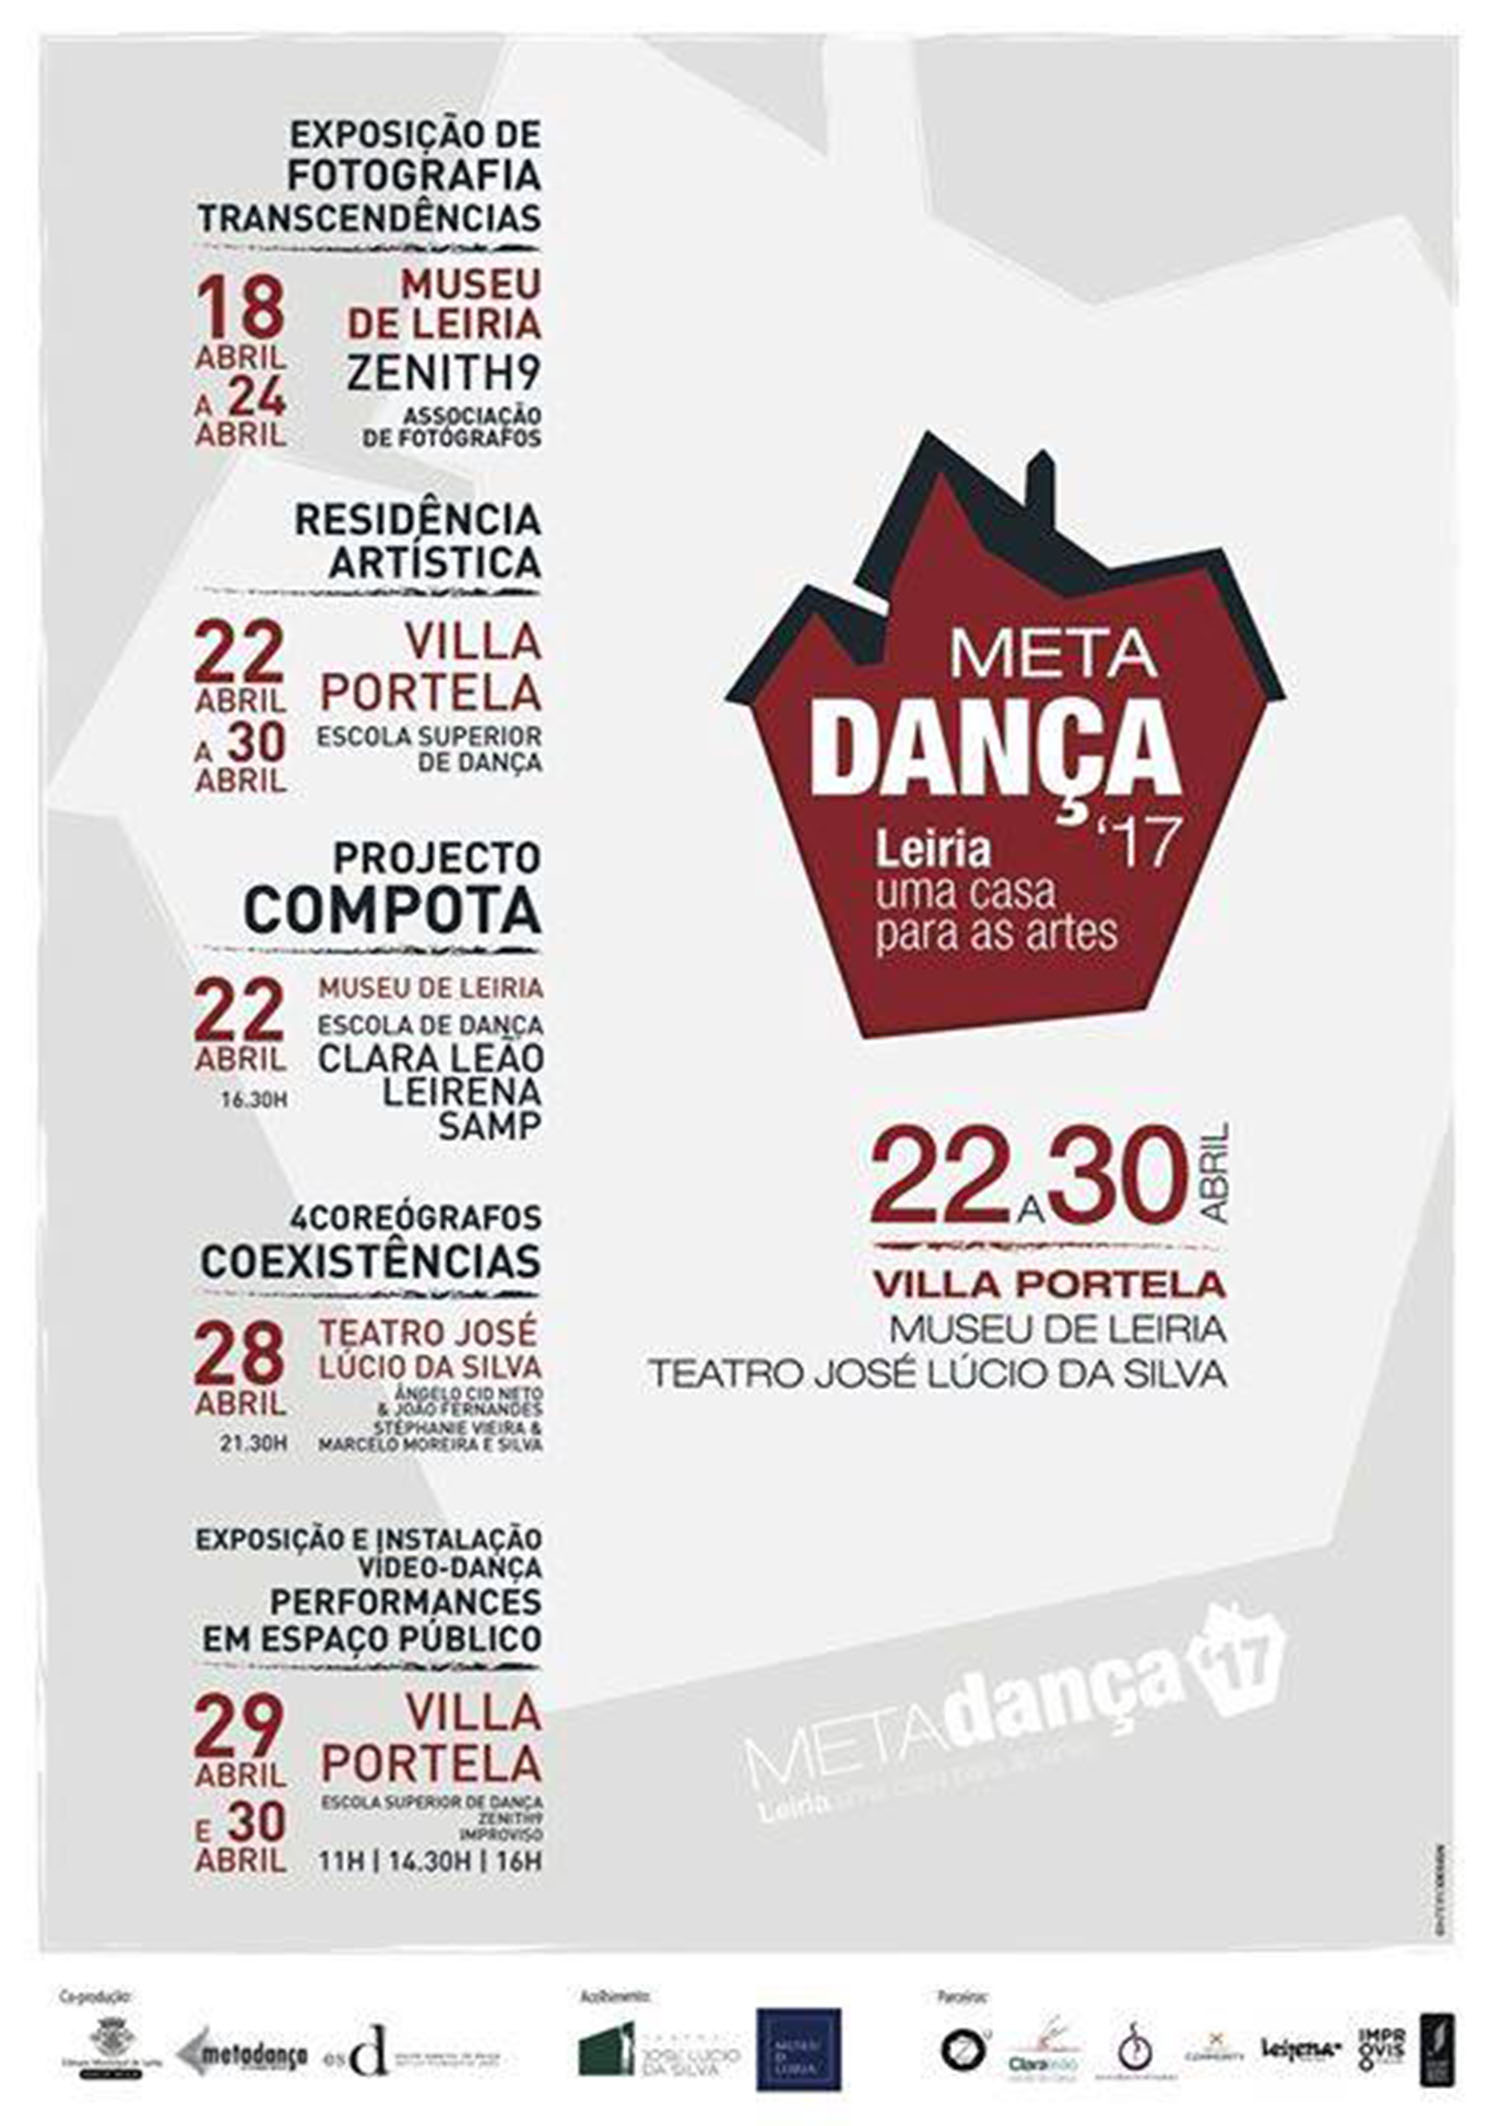 CARTAZ COMPOTA NO METADANÇA 2017